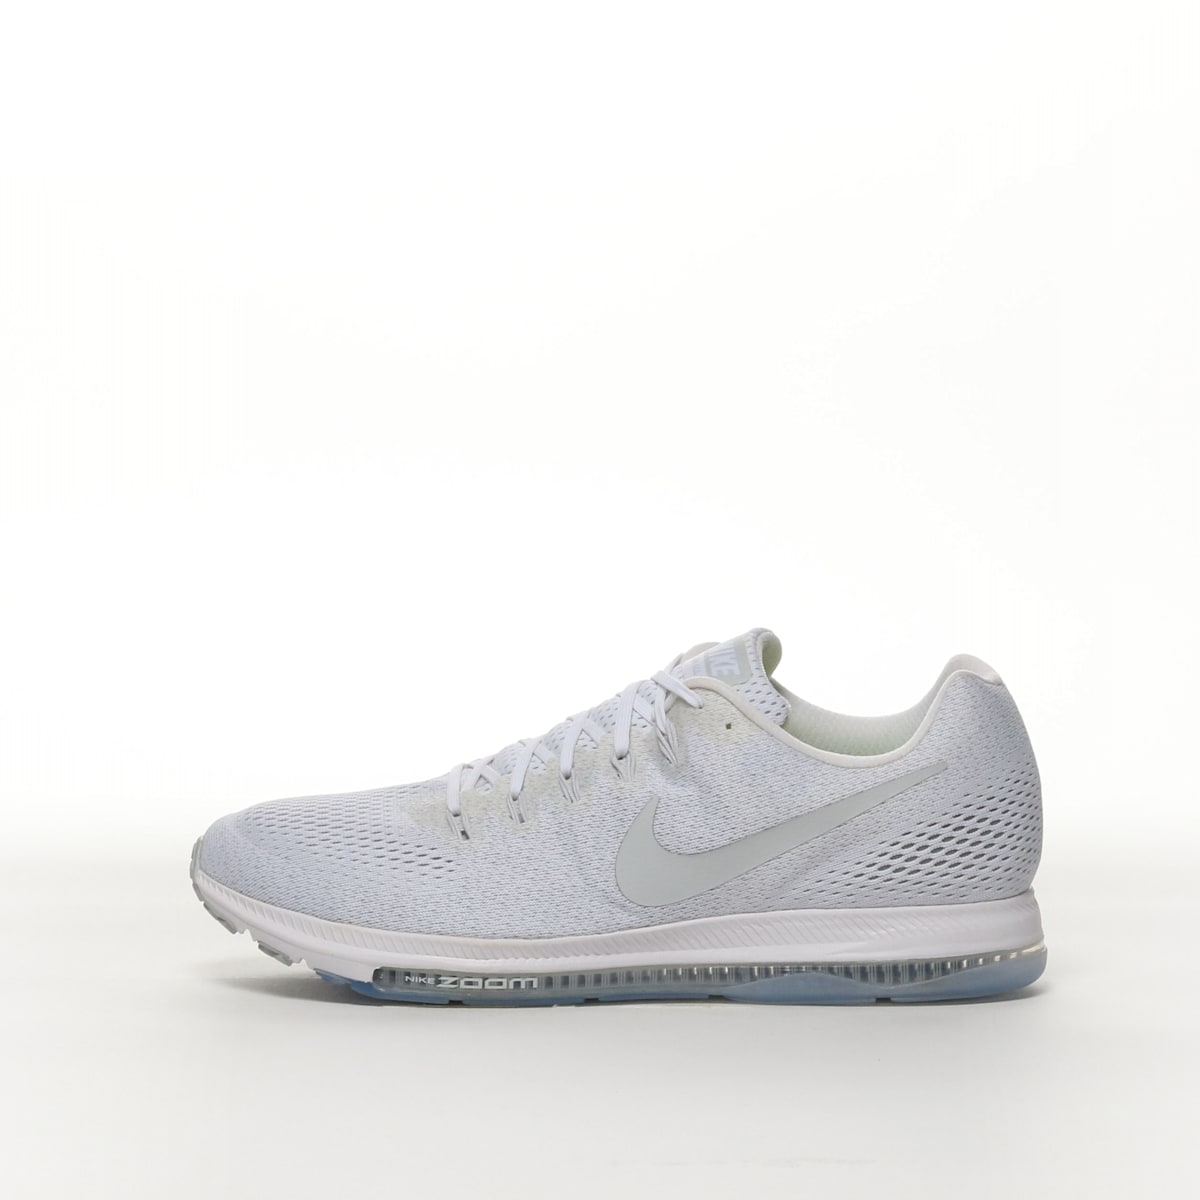 d73afea379f9c Men s Nike Zoom All Out Low Running Shoe - WHITE PURE PLATINUM – Resku